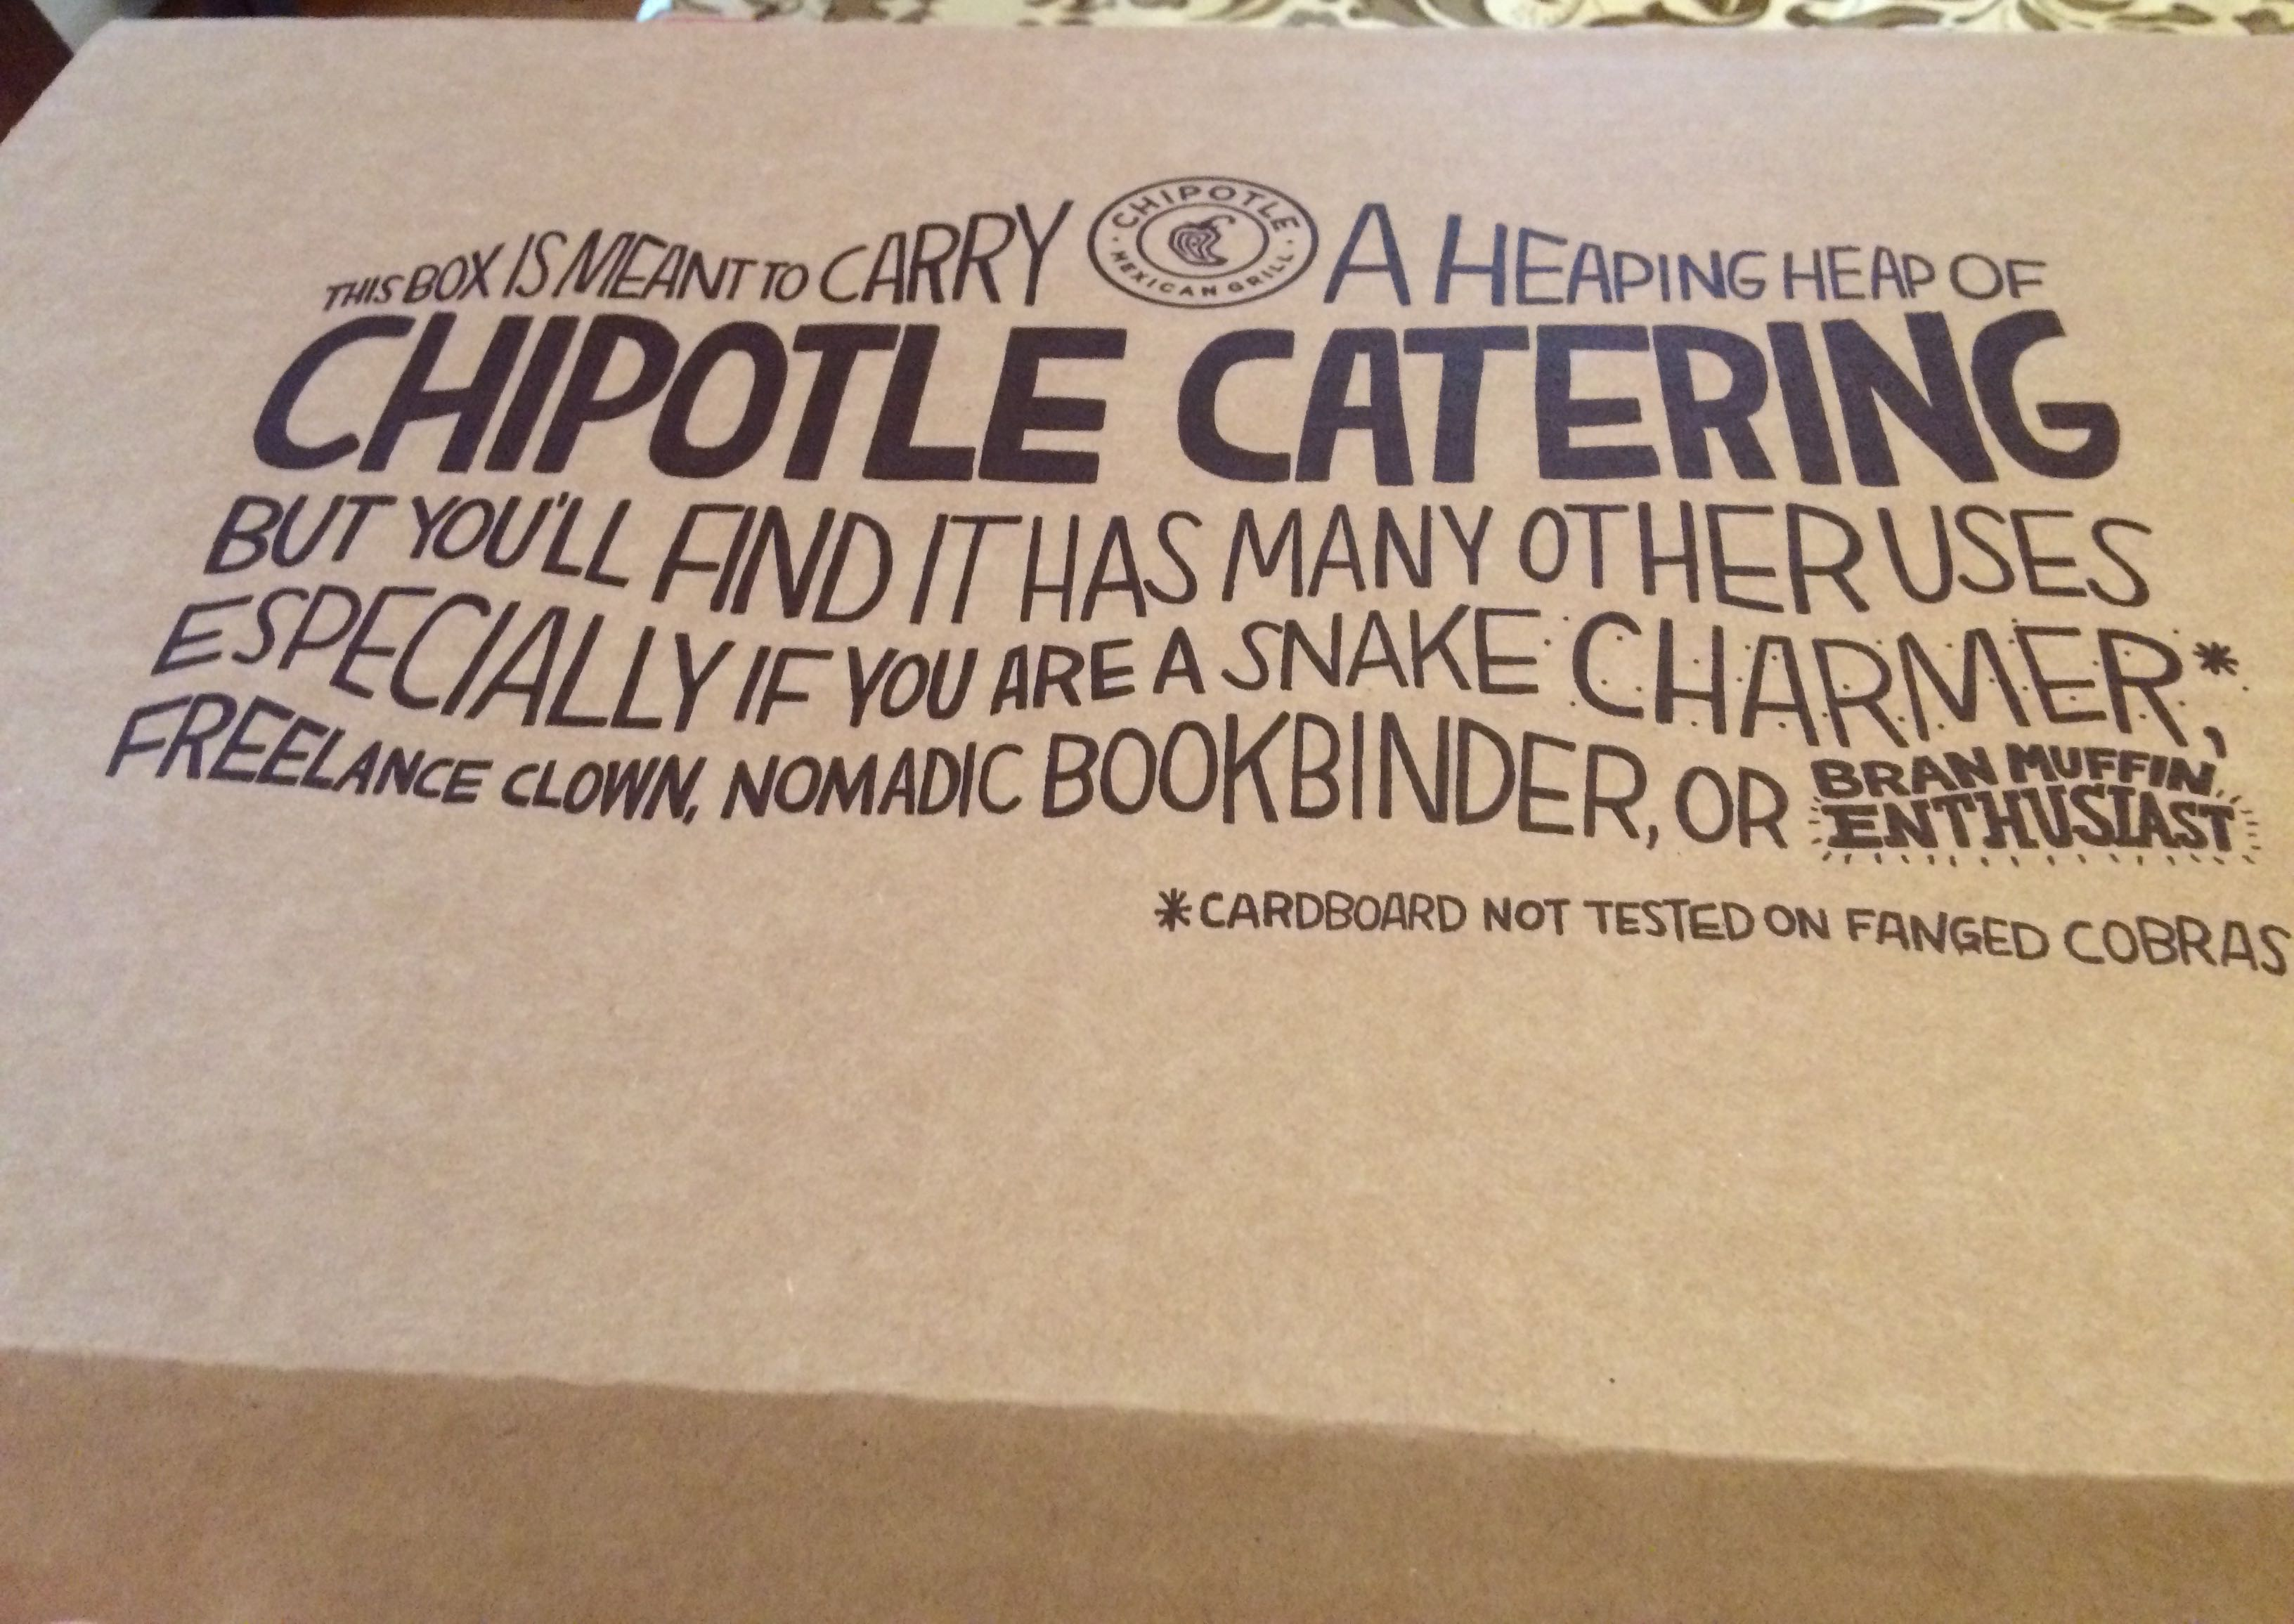 Chipotle_catering